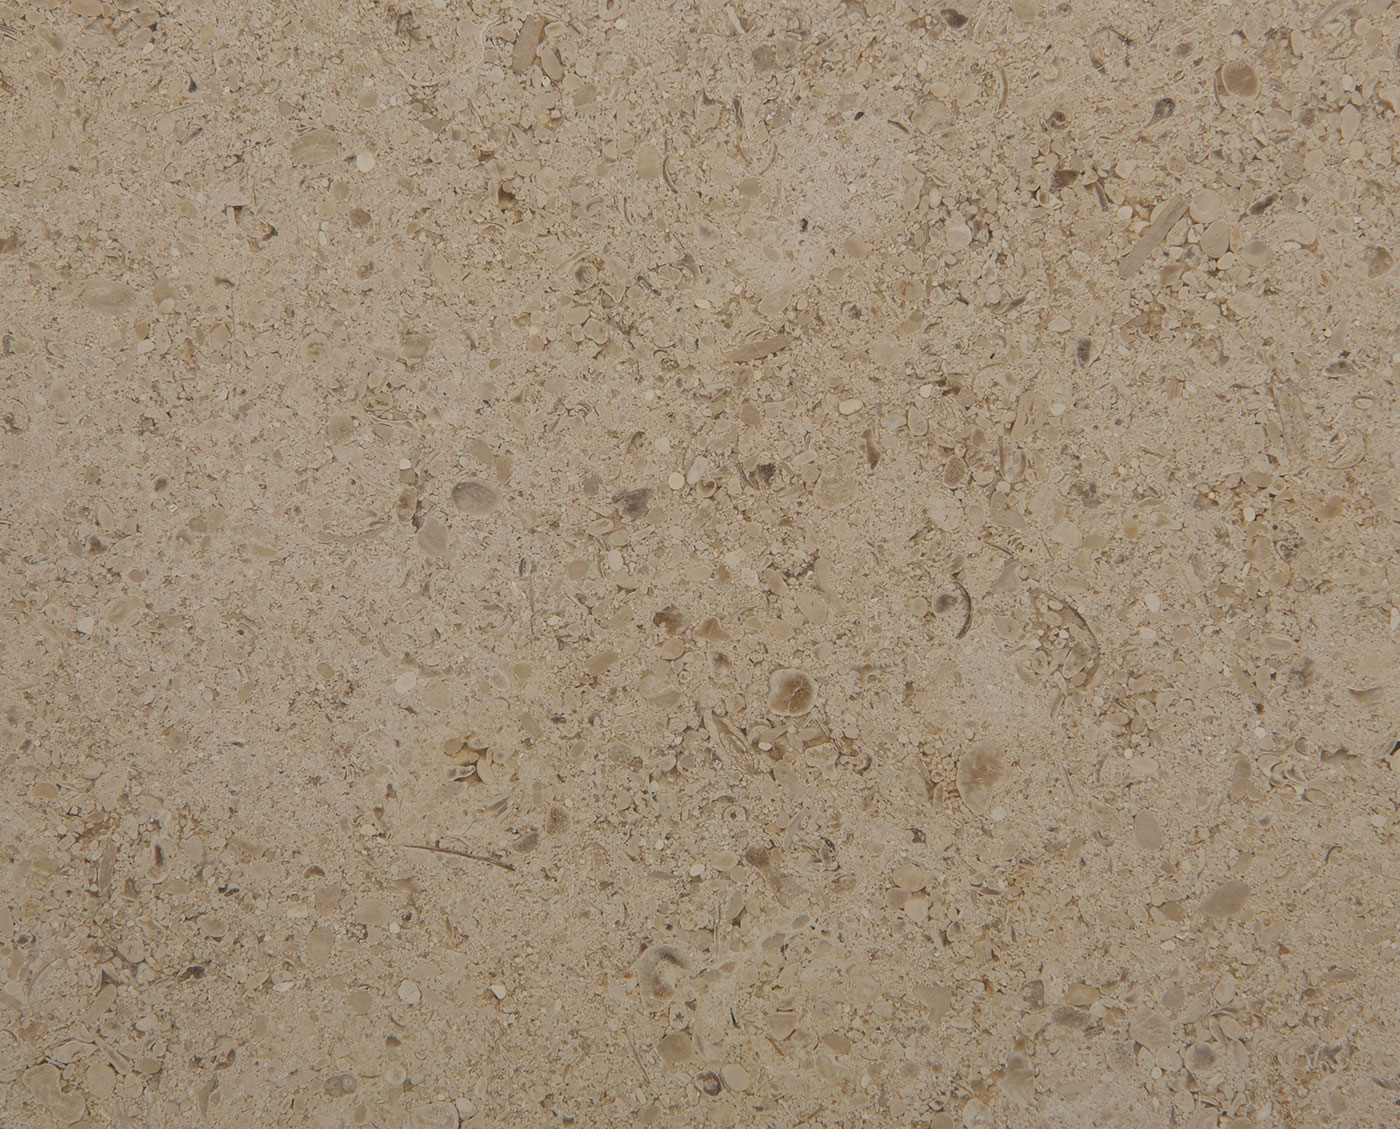 Mespiral Beige honed tiles and slabs